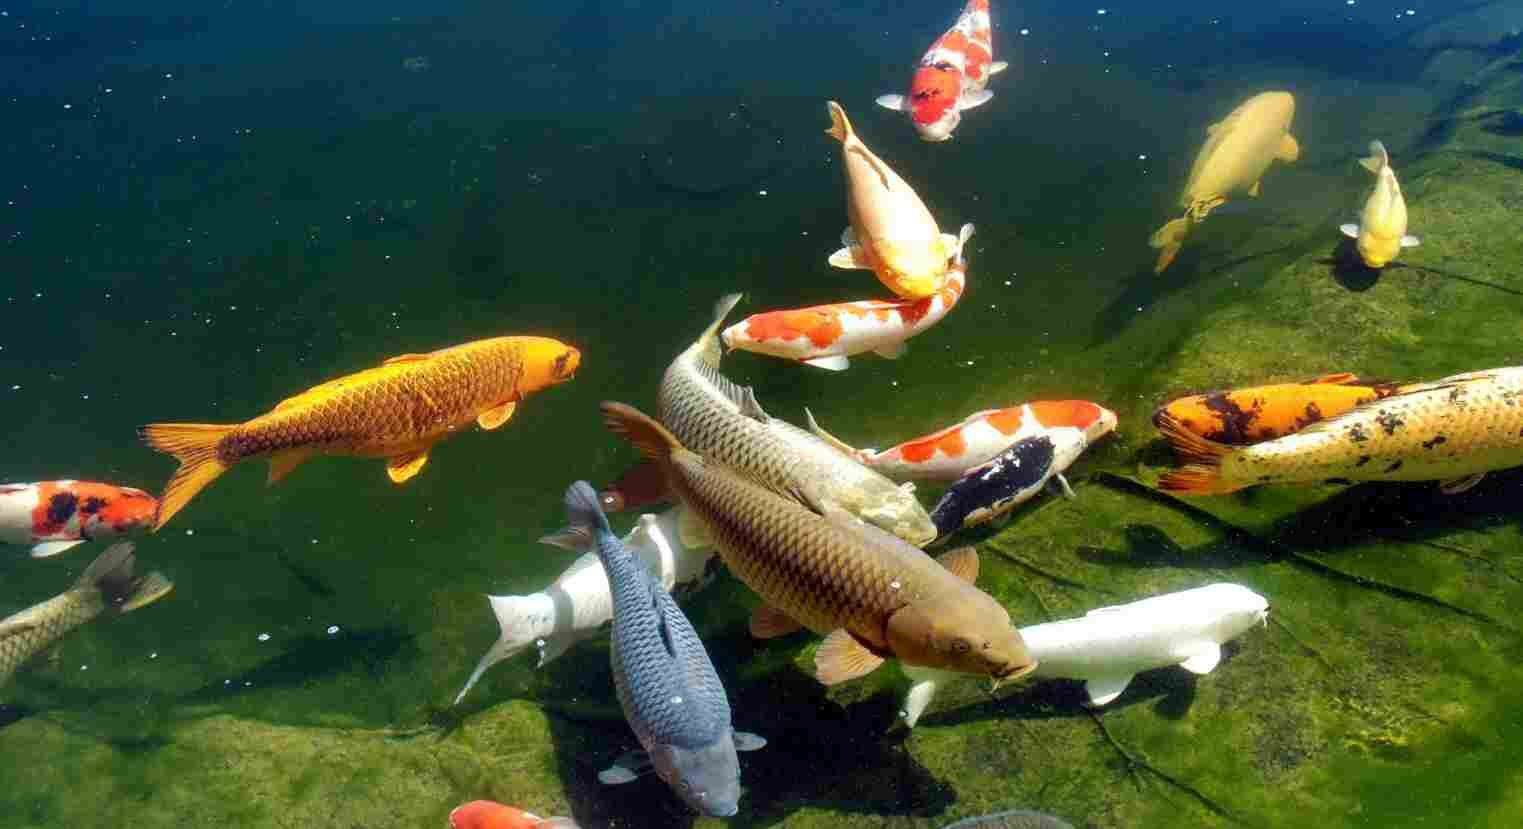 Koi fish pond wallpaper hd koi fish in the pond koi for Koi fish pond